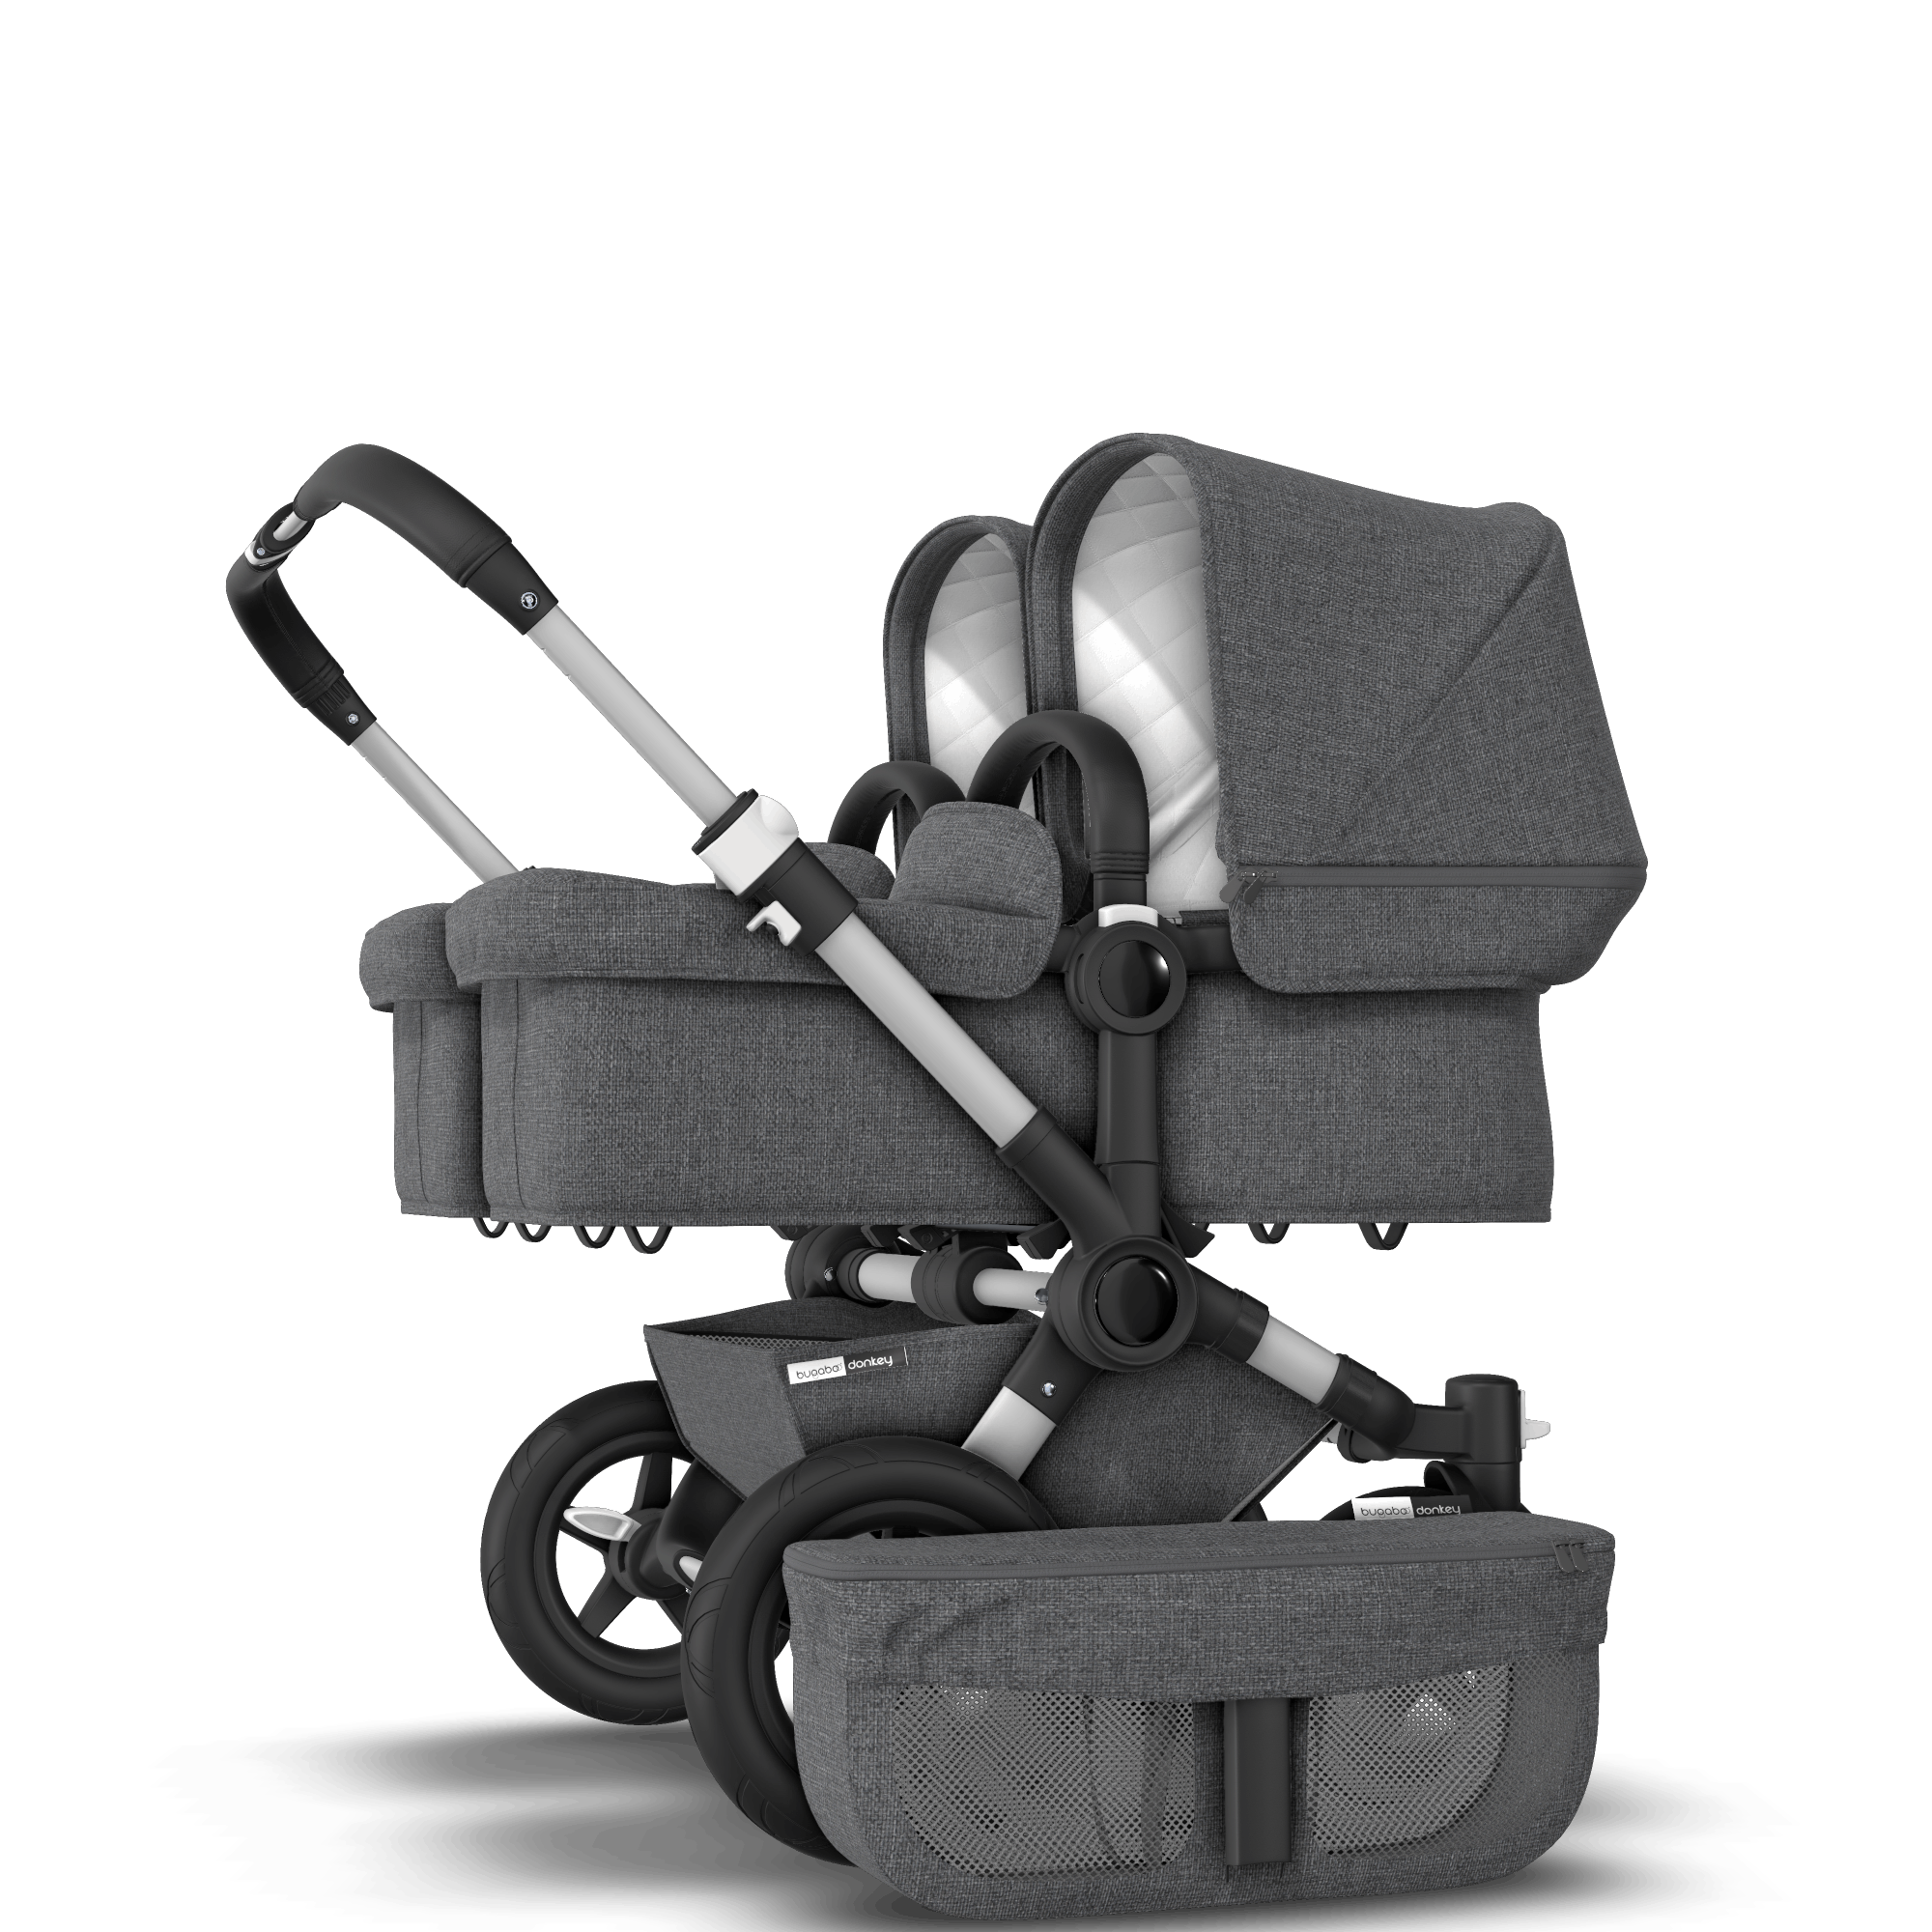 Best Knee Stroller Bugaboo Donkey 2 Twin Seat And Bassinet Stroller